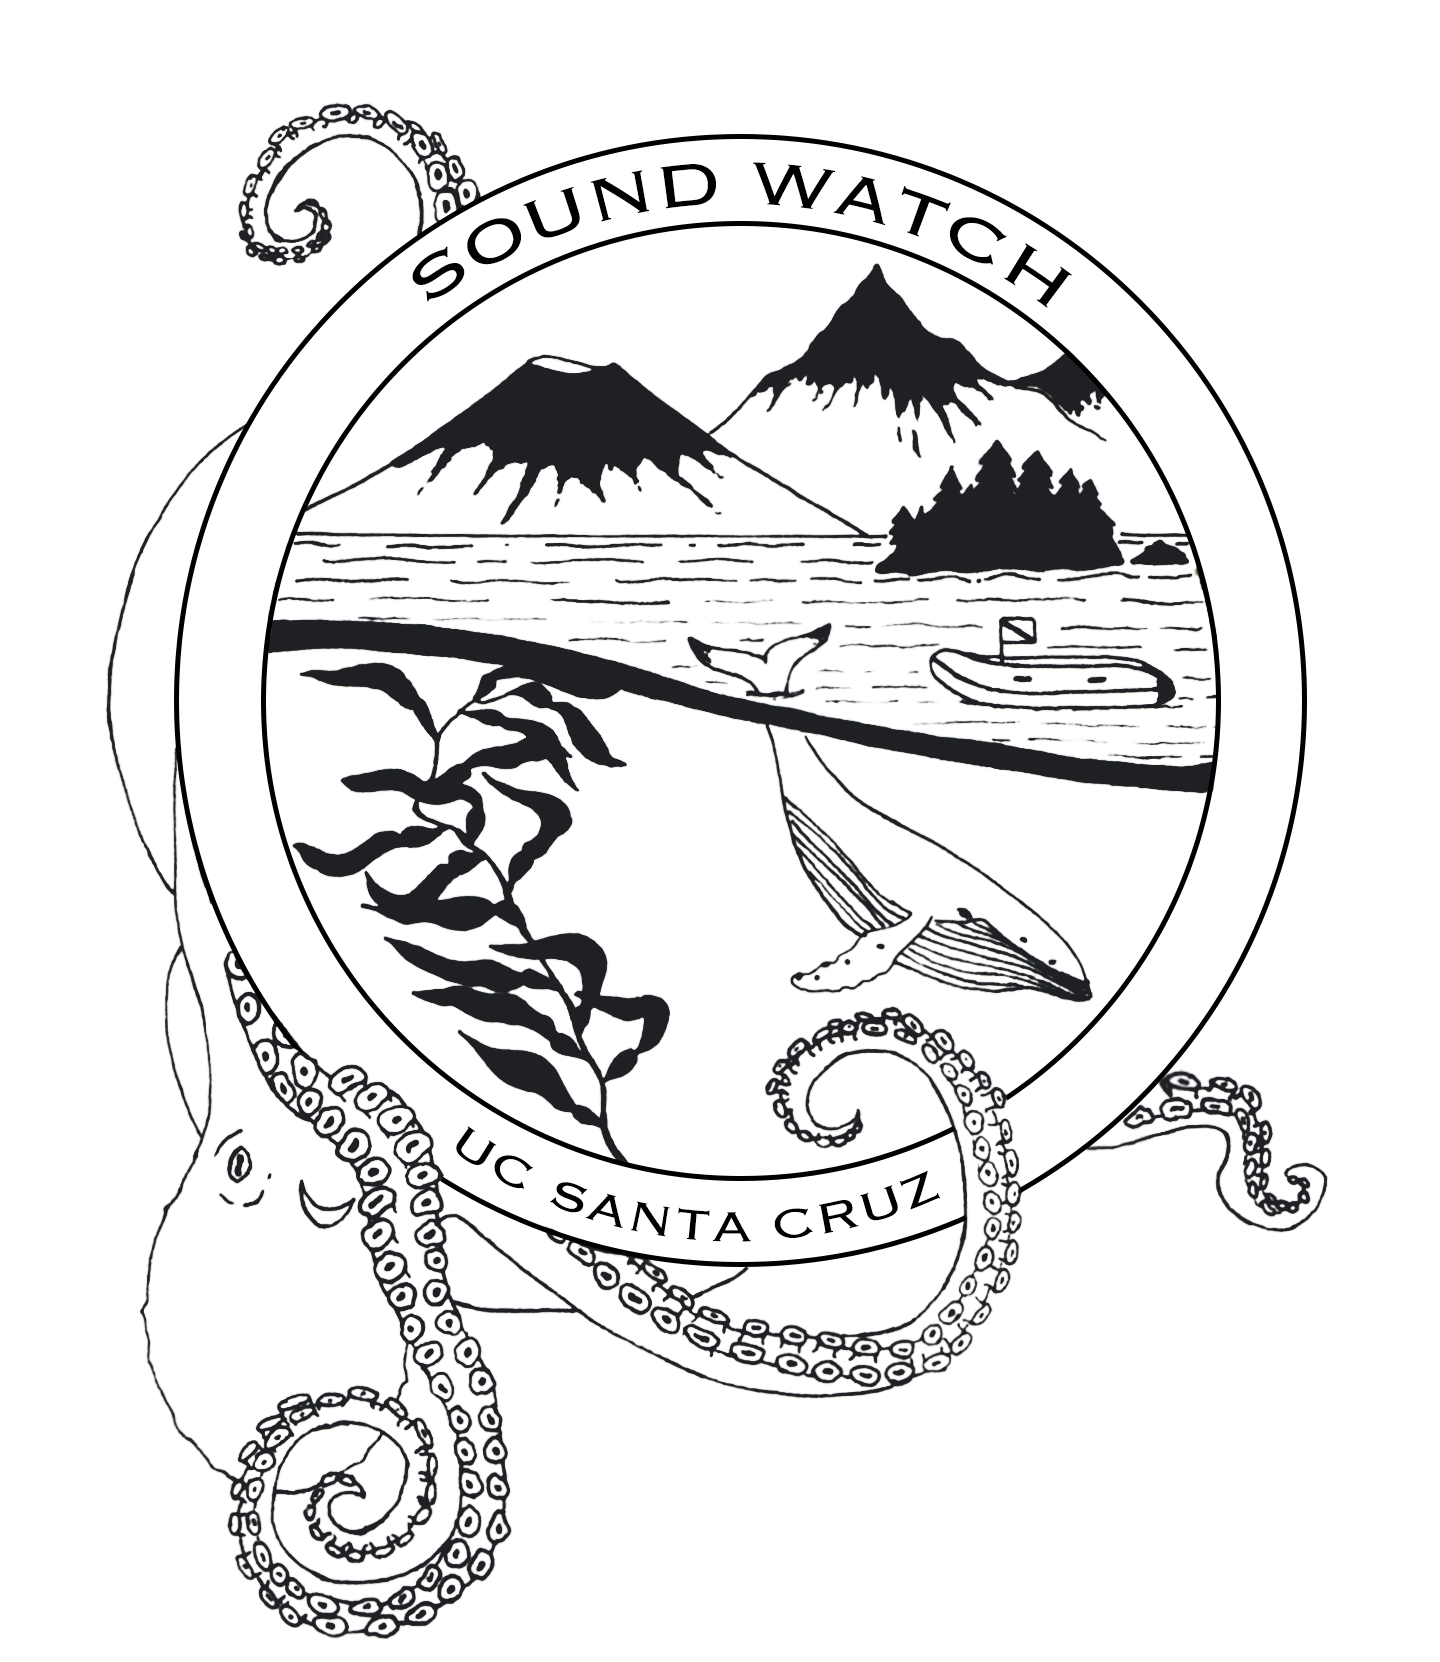 'Sound Watch' explores effects of climate change on Sitka's marine ecosystems - KCAW